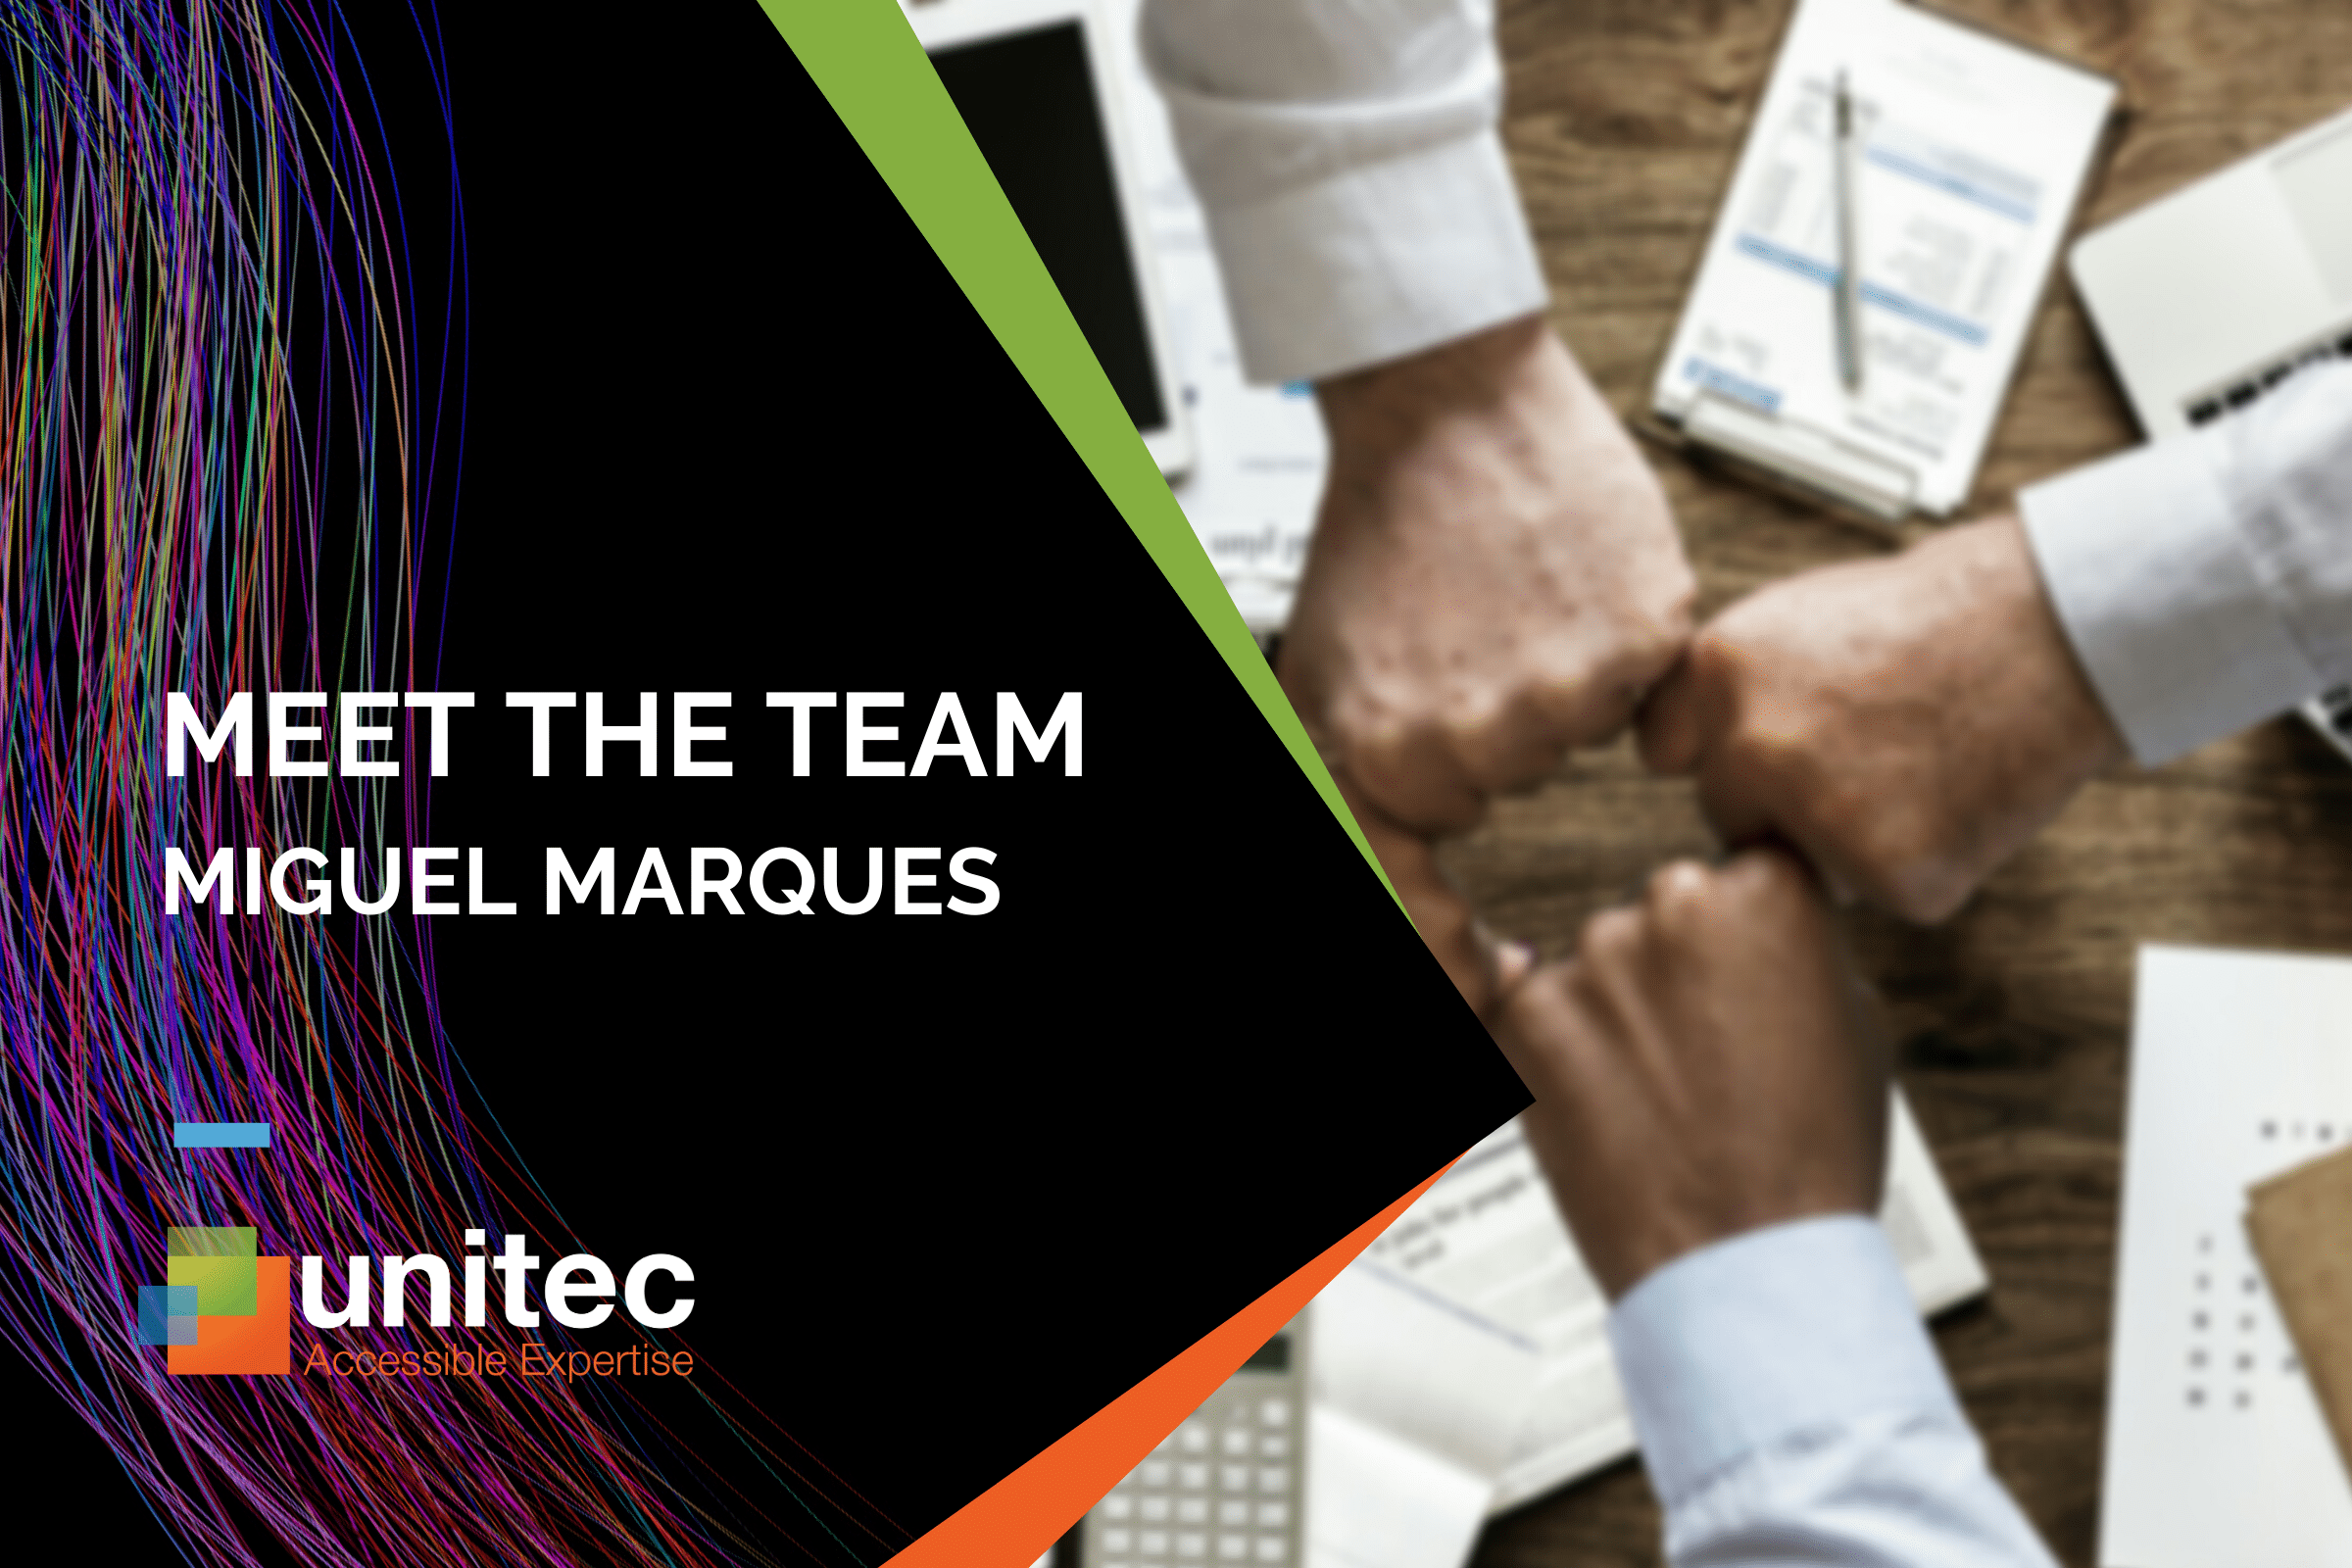 Meet Unitec's Miguel Marques, Sales Director